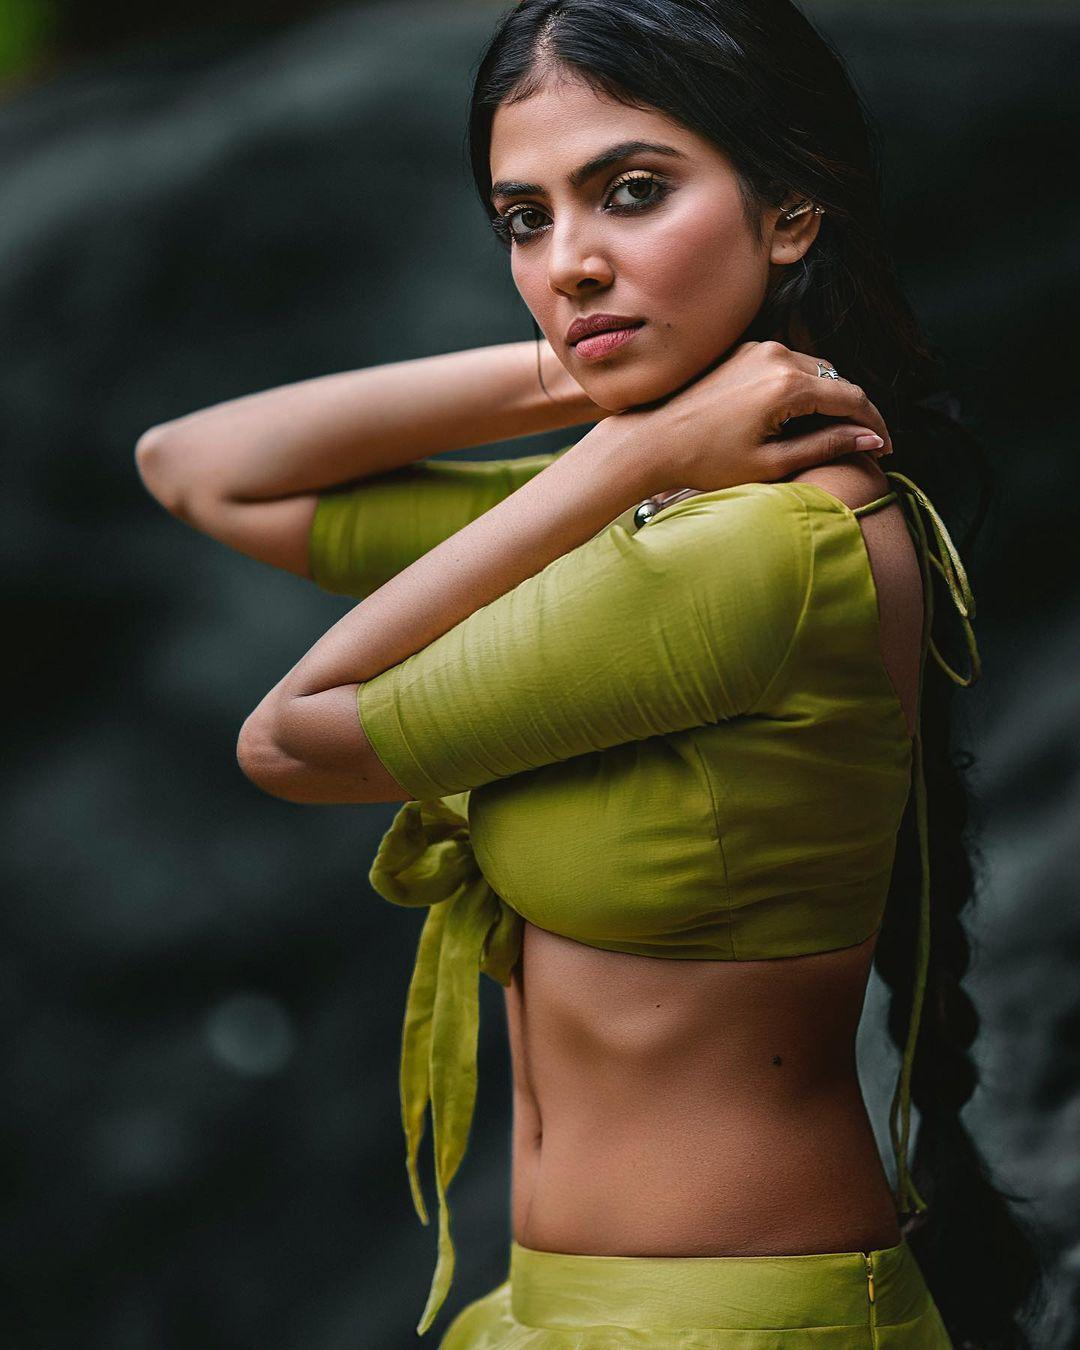 South Indian Actress Hot Cleavage Photo Gallery Malavika Mohanan Exposing Hot Photos Gallery Photos Hd Images Pictures Stills First Look Posters Of South Indian Actress Hot Cleavage Photo Gallery Malavika